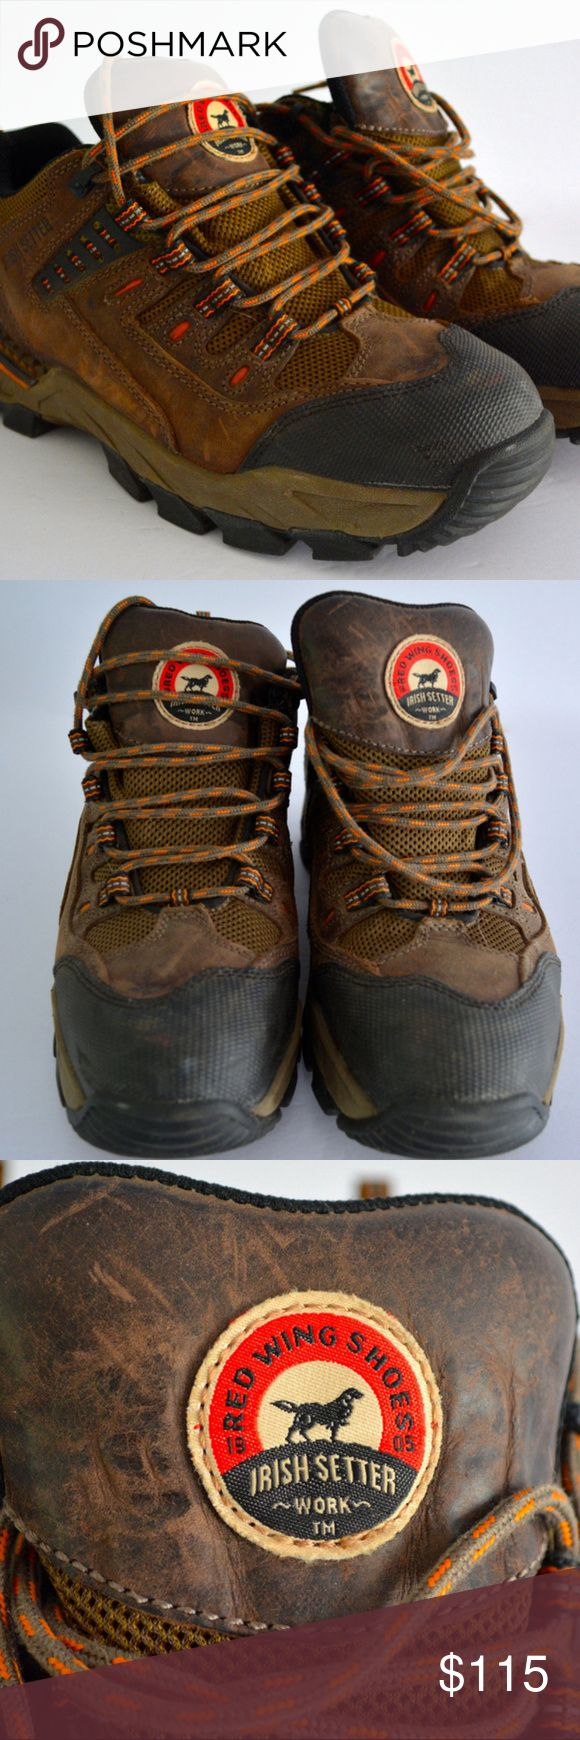 "RED WING Irish Setter HIKING SHOES Boots Size 8 Red Wing Irish Setter Work Boot Shoes Safety Aluminum Toe, Lace Up Mens Size 8, ""Two Harbors"" Style #83102   Very good gently pre-owned condition. Red Wing Shoes Shoes Boots"